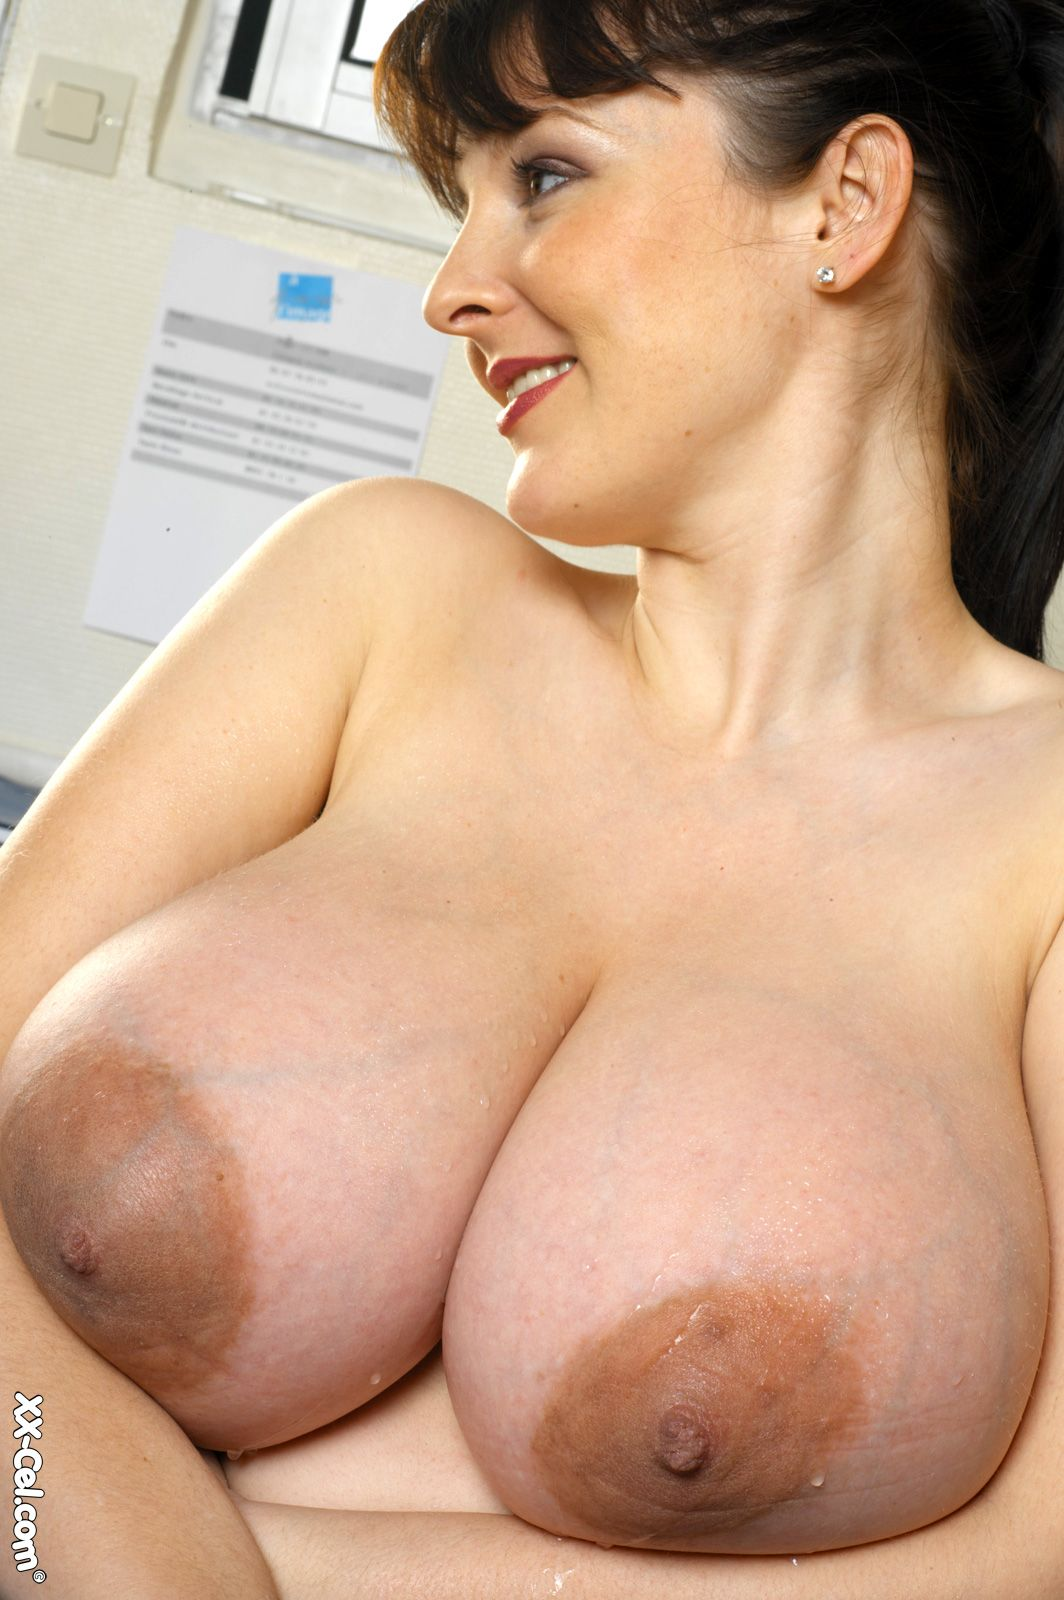 You the big tits natural pictures seems